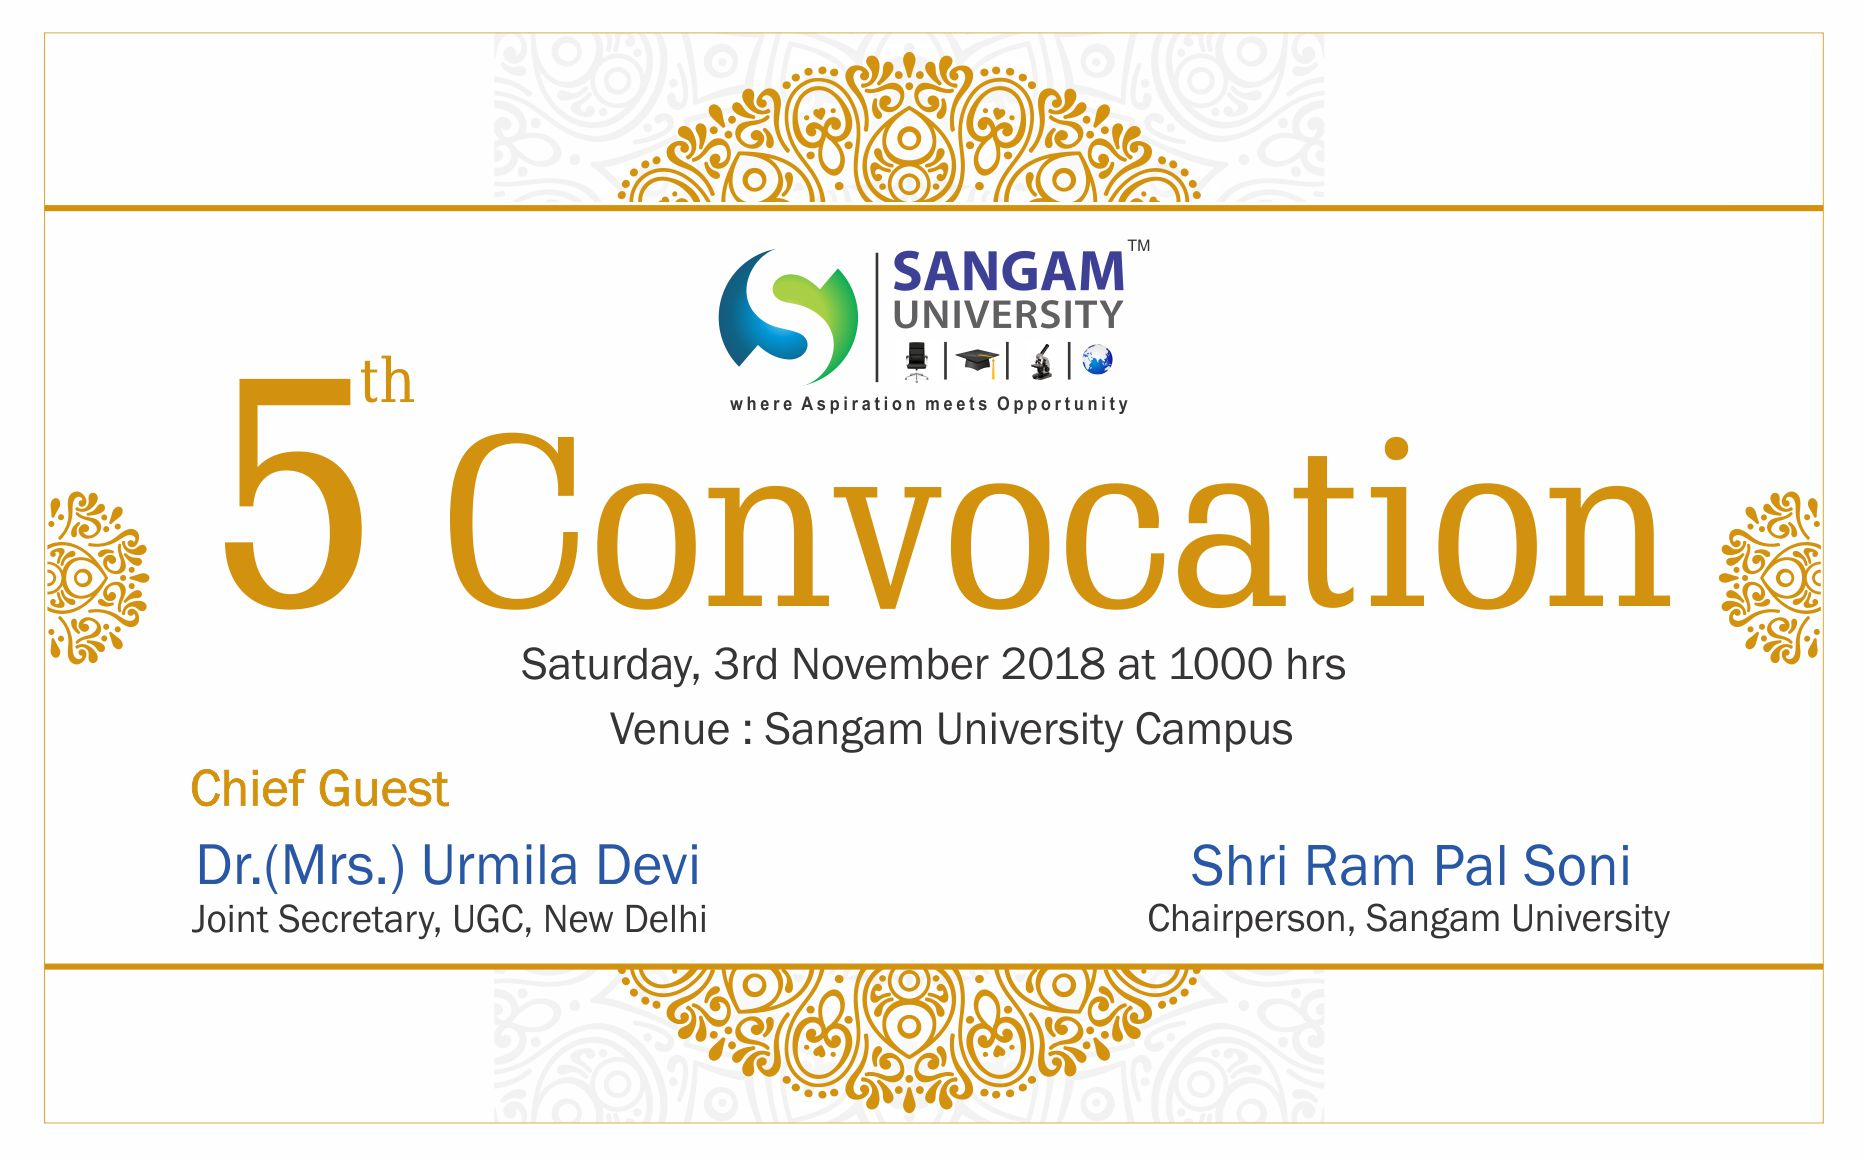 Invitation for 5th Convocation on 3rd November 2018